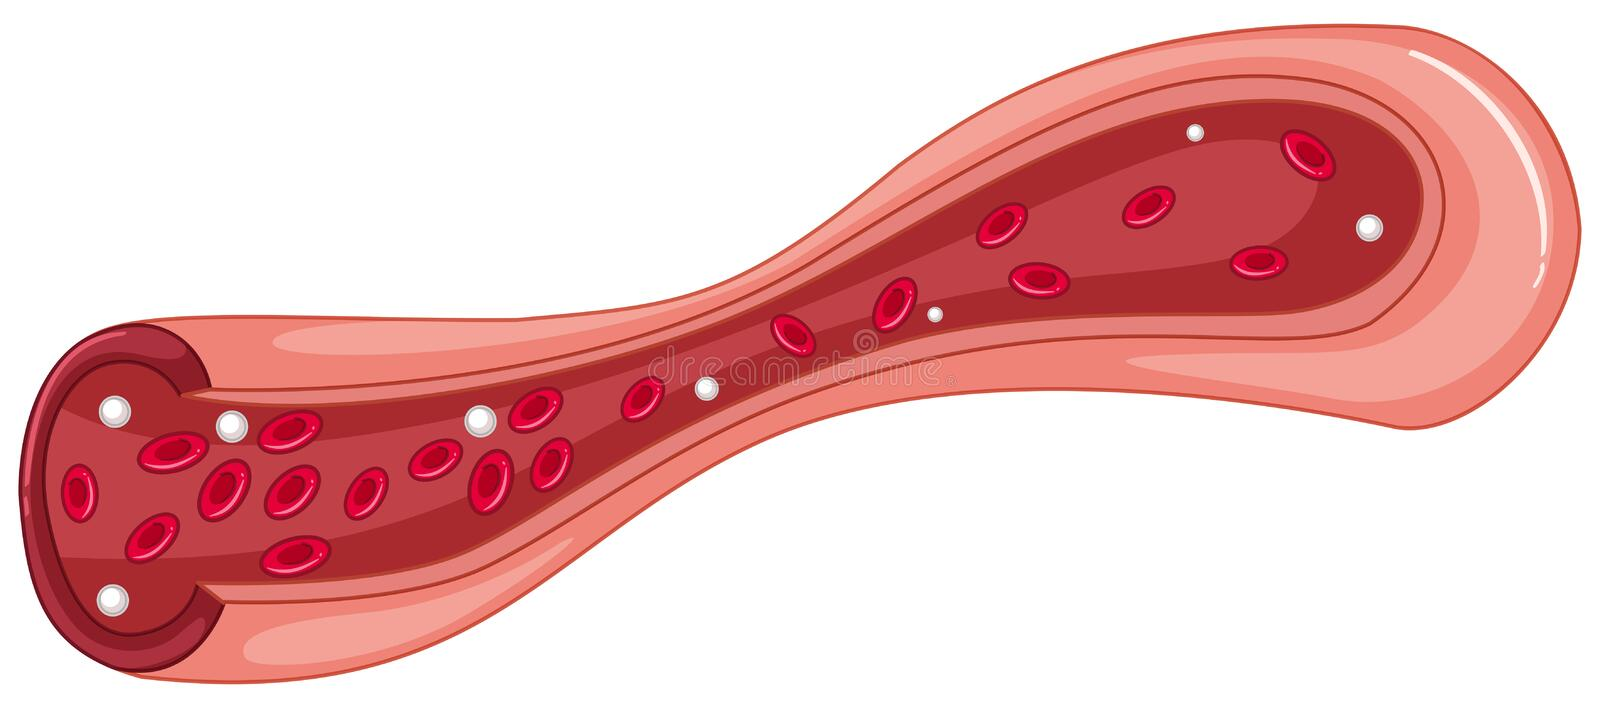 Close up diagram of blood clot. Illustration vector illustration